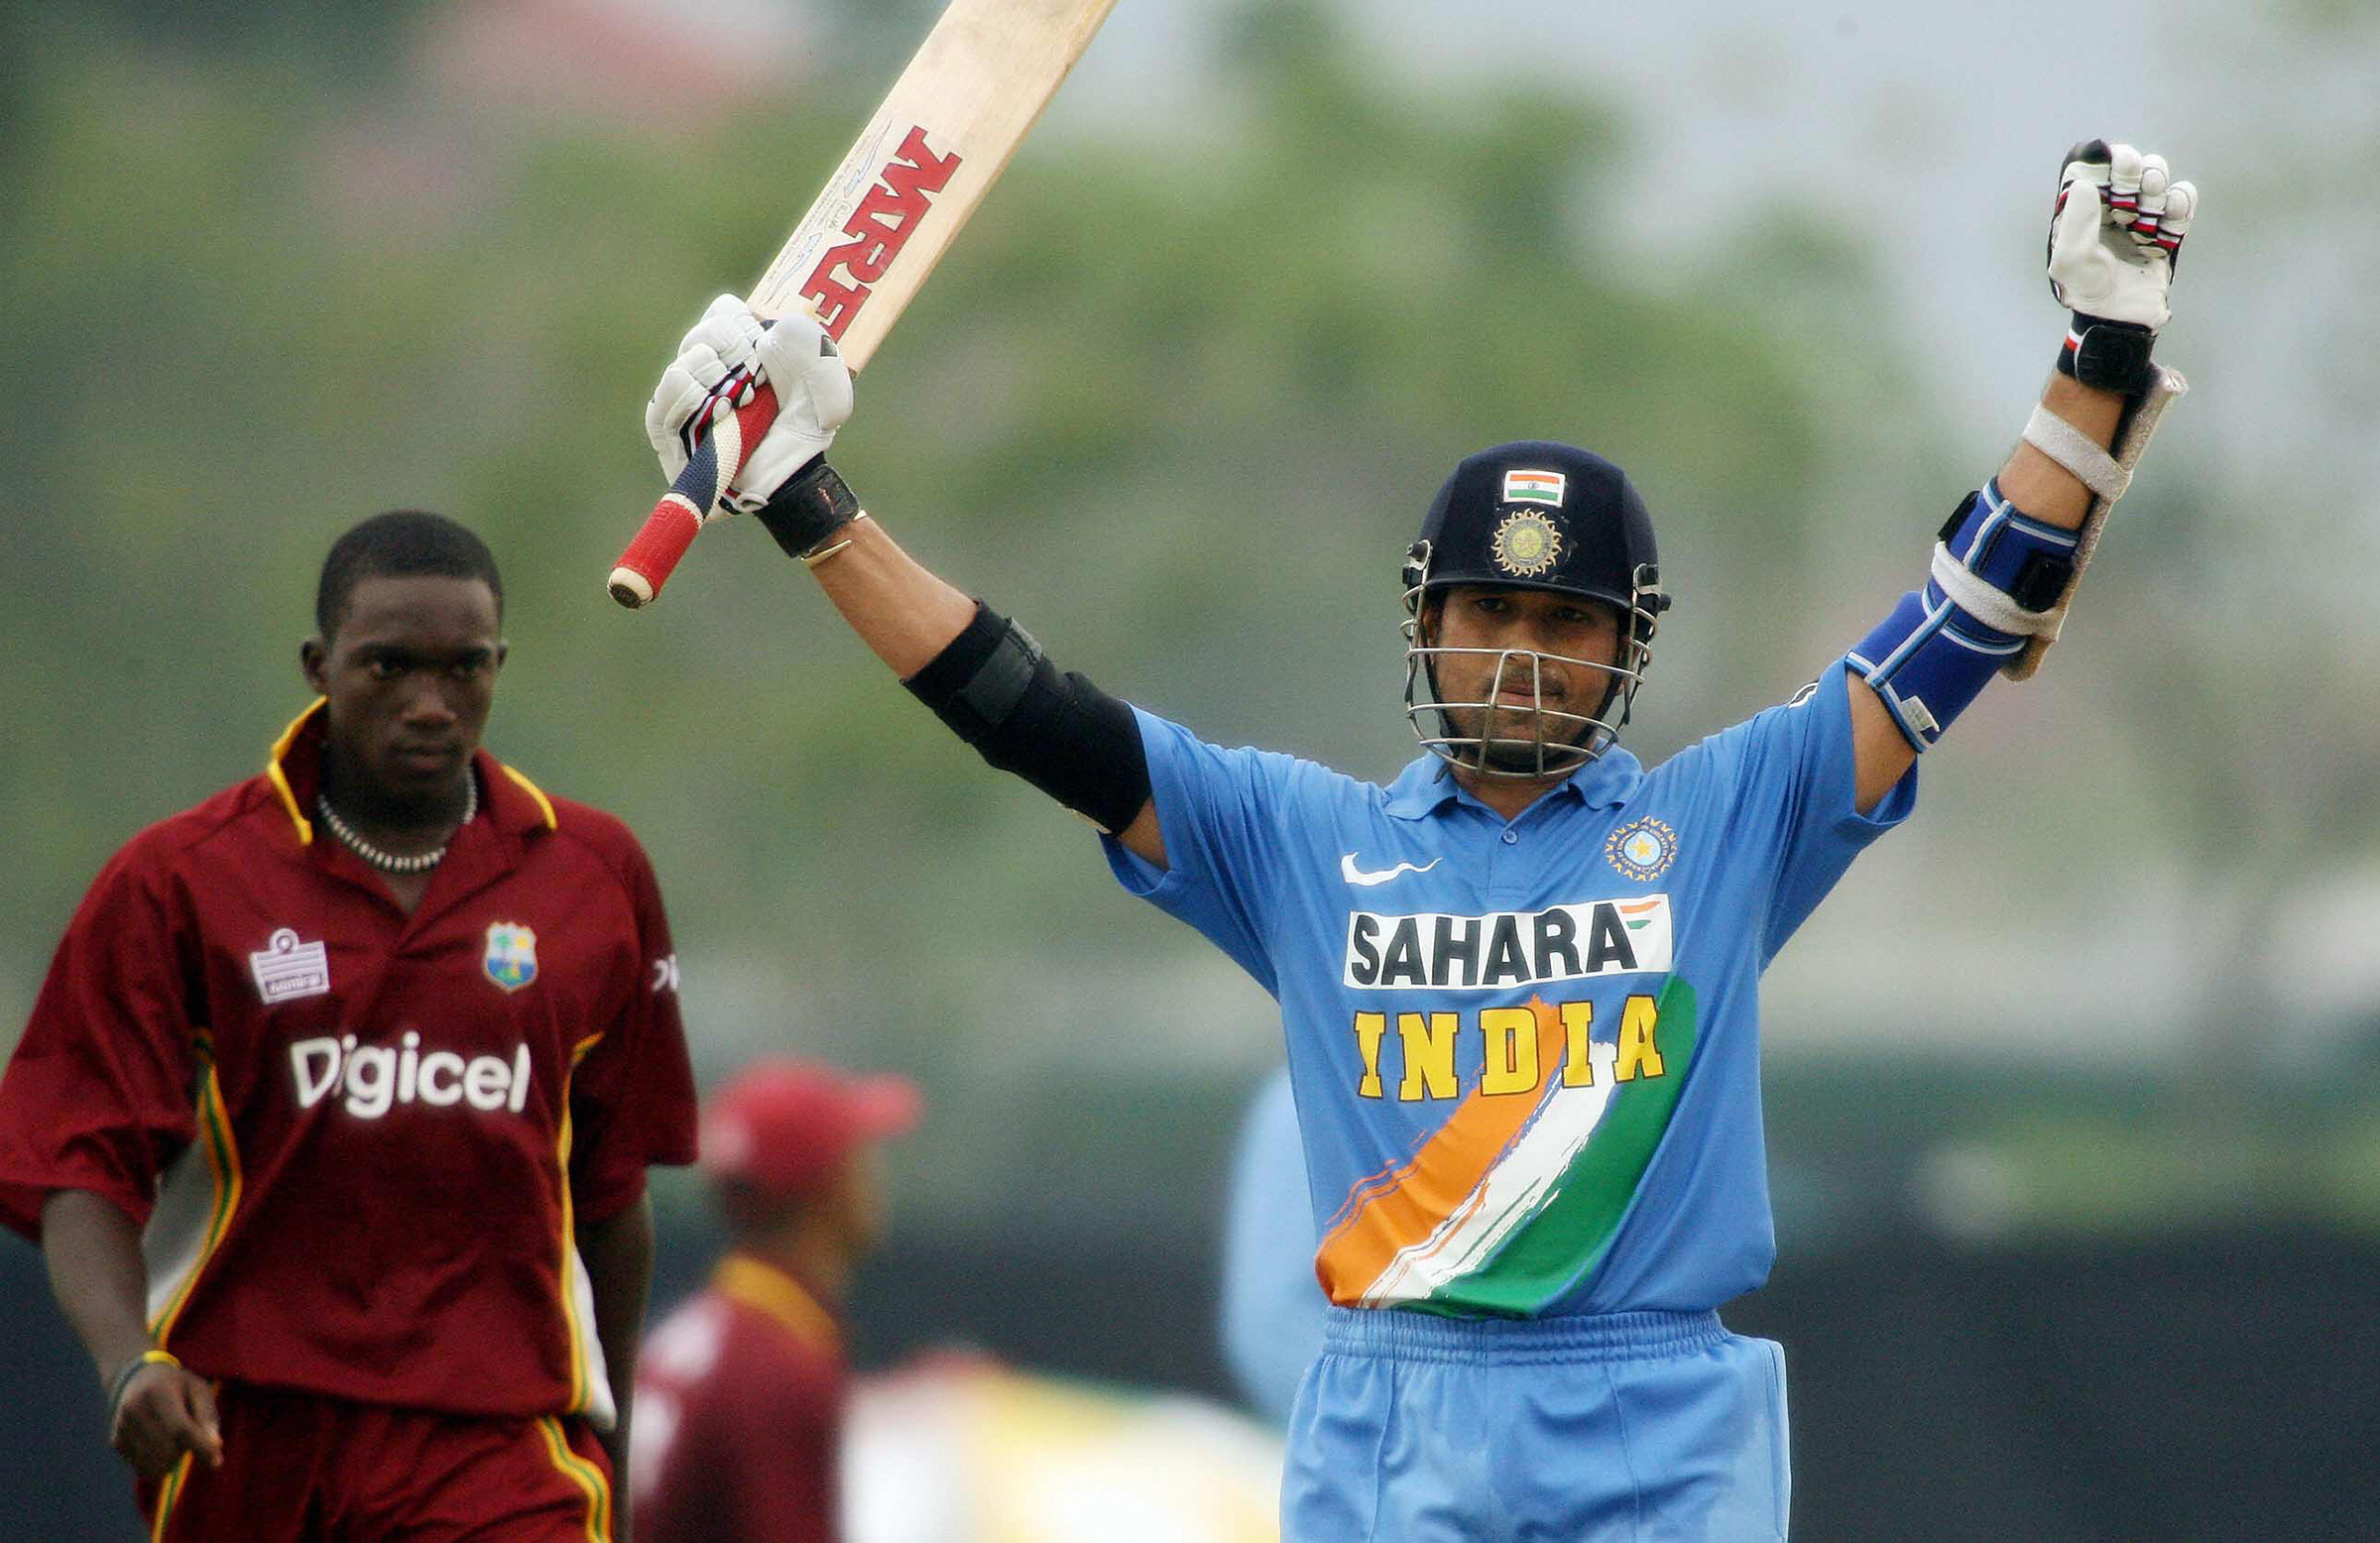 Sachin Tendulkar celebrates a hundred in the 2006 DLF Cup // Getty